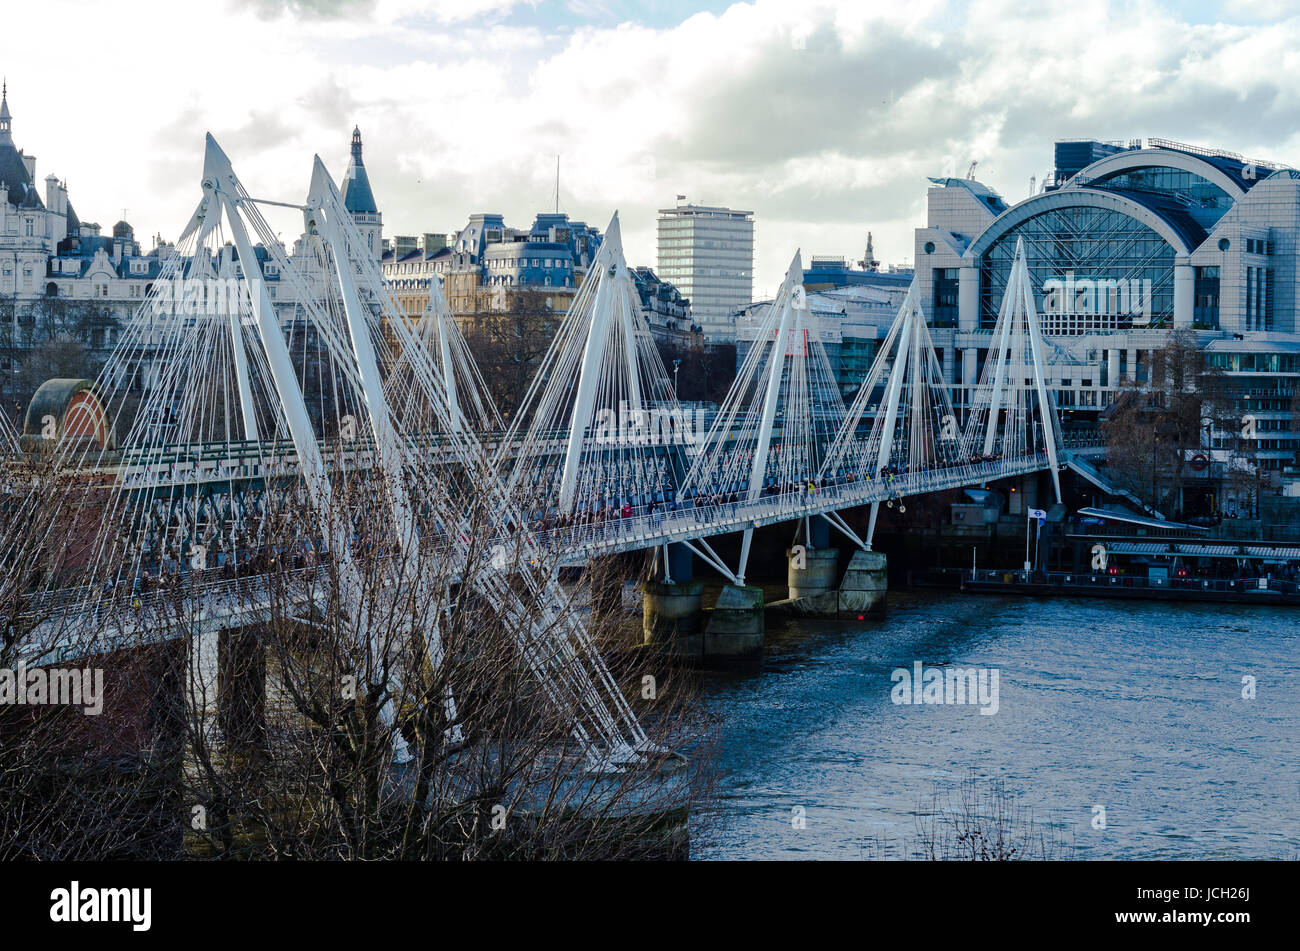 Hungerford and Golden Jubilee Bridges on the River Thames, London Stock Photo